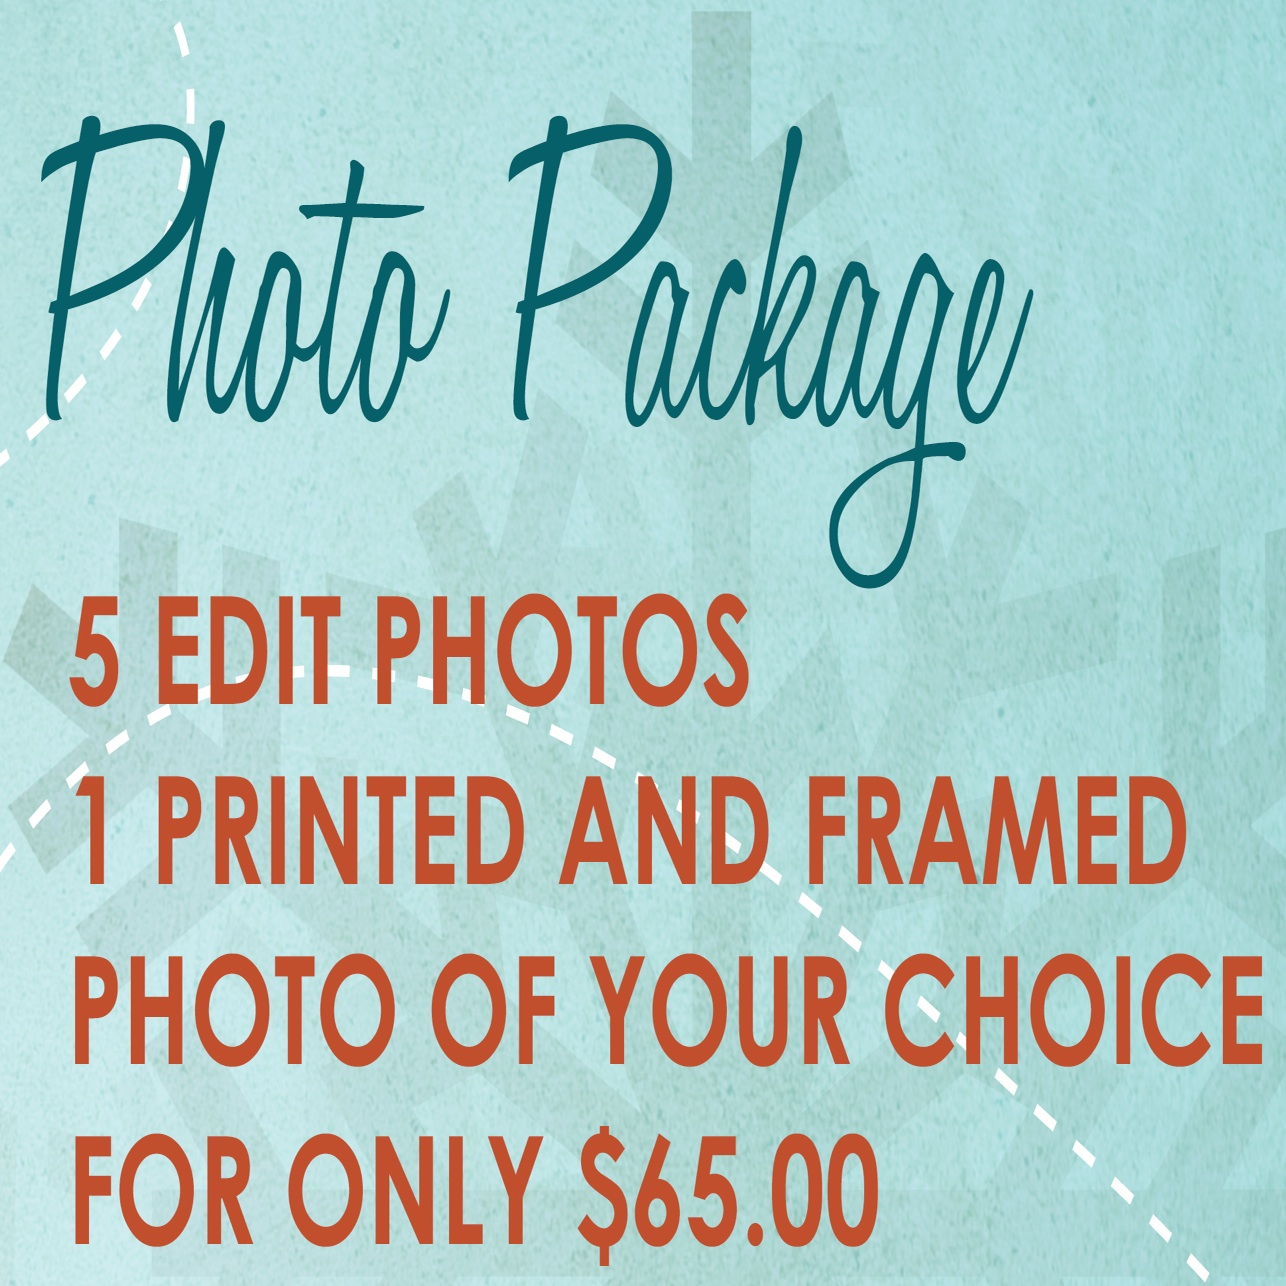 Holiday Photo Package